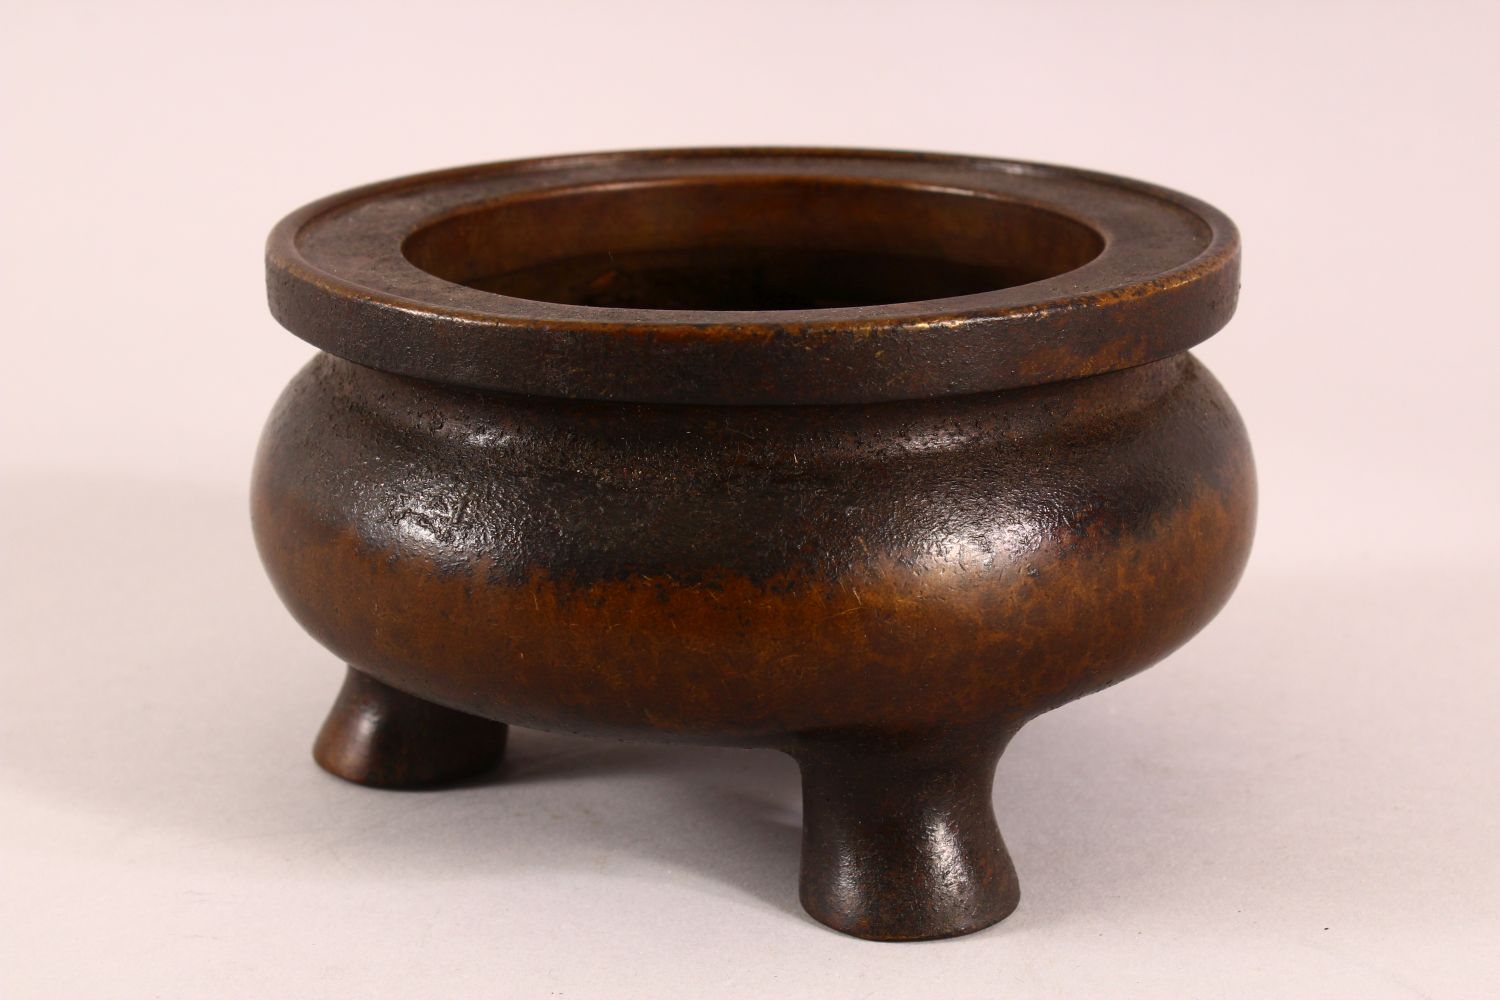 A CHINESE XUANDE STYLE BRONZE TRIPOD CENSER, underside with a mark, 16cm - Image 4 of 7